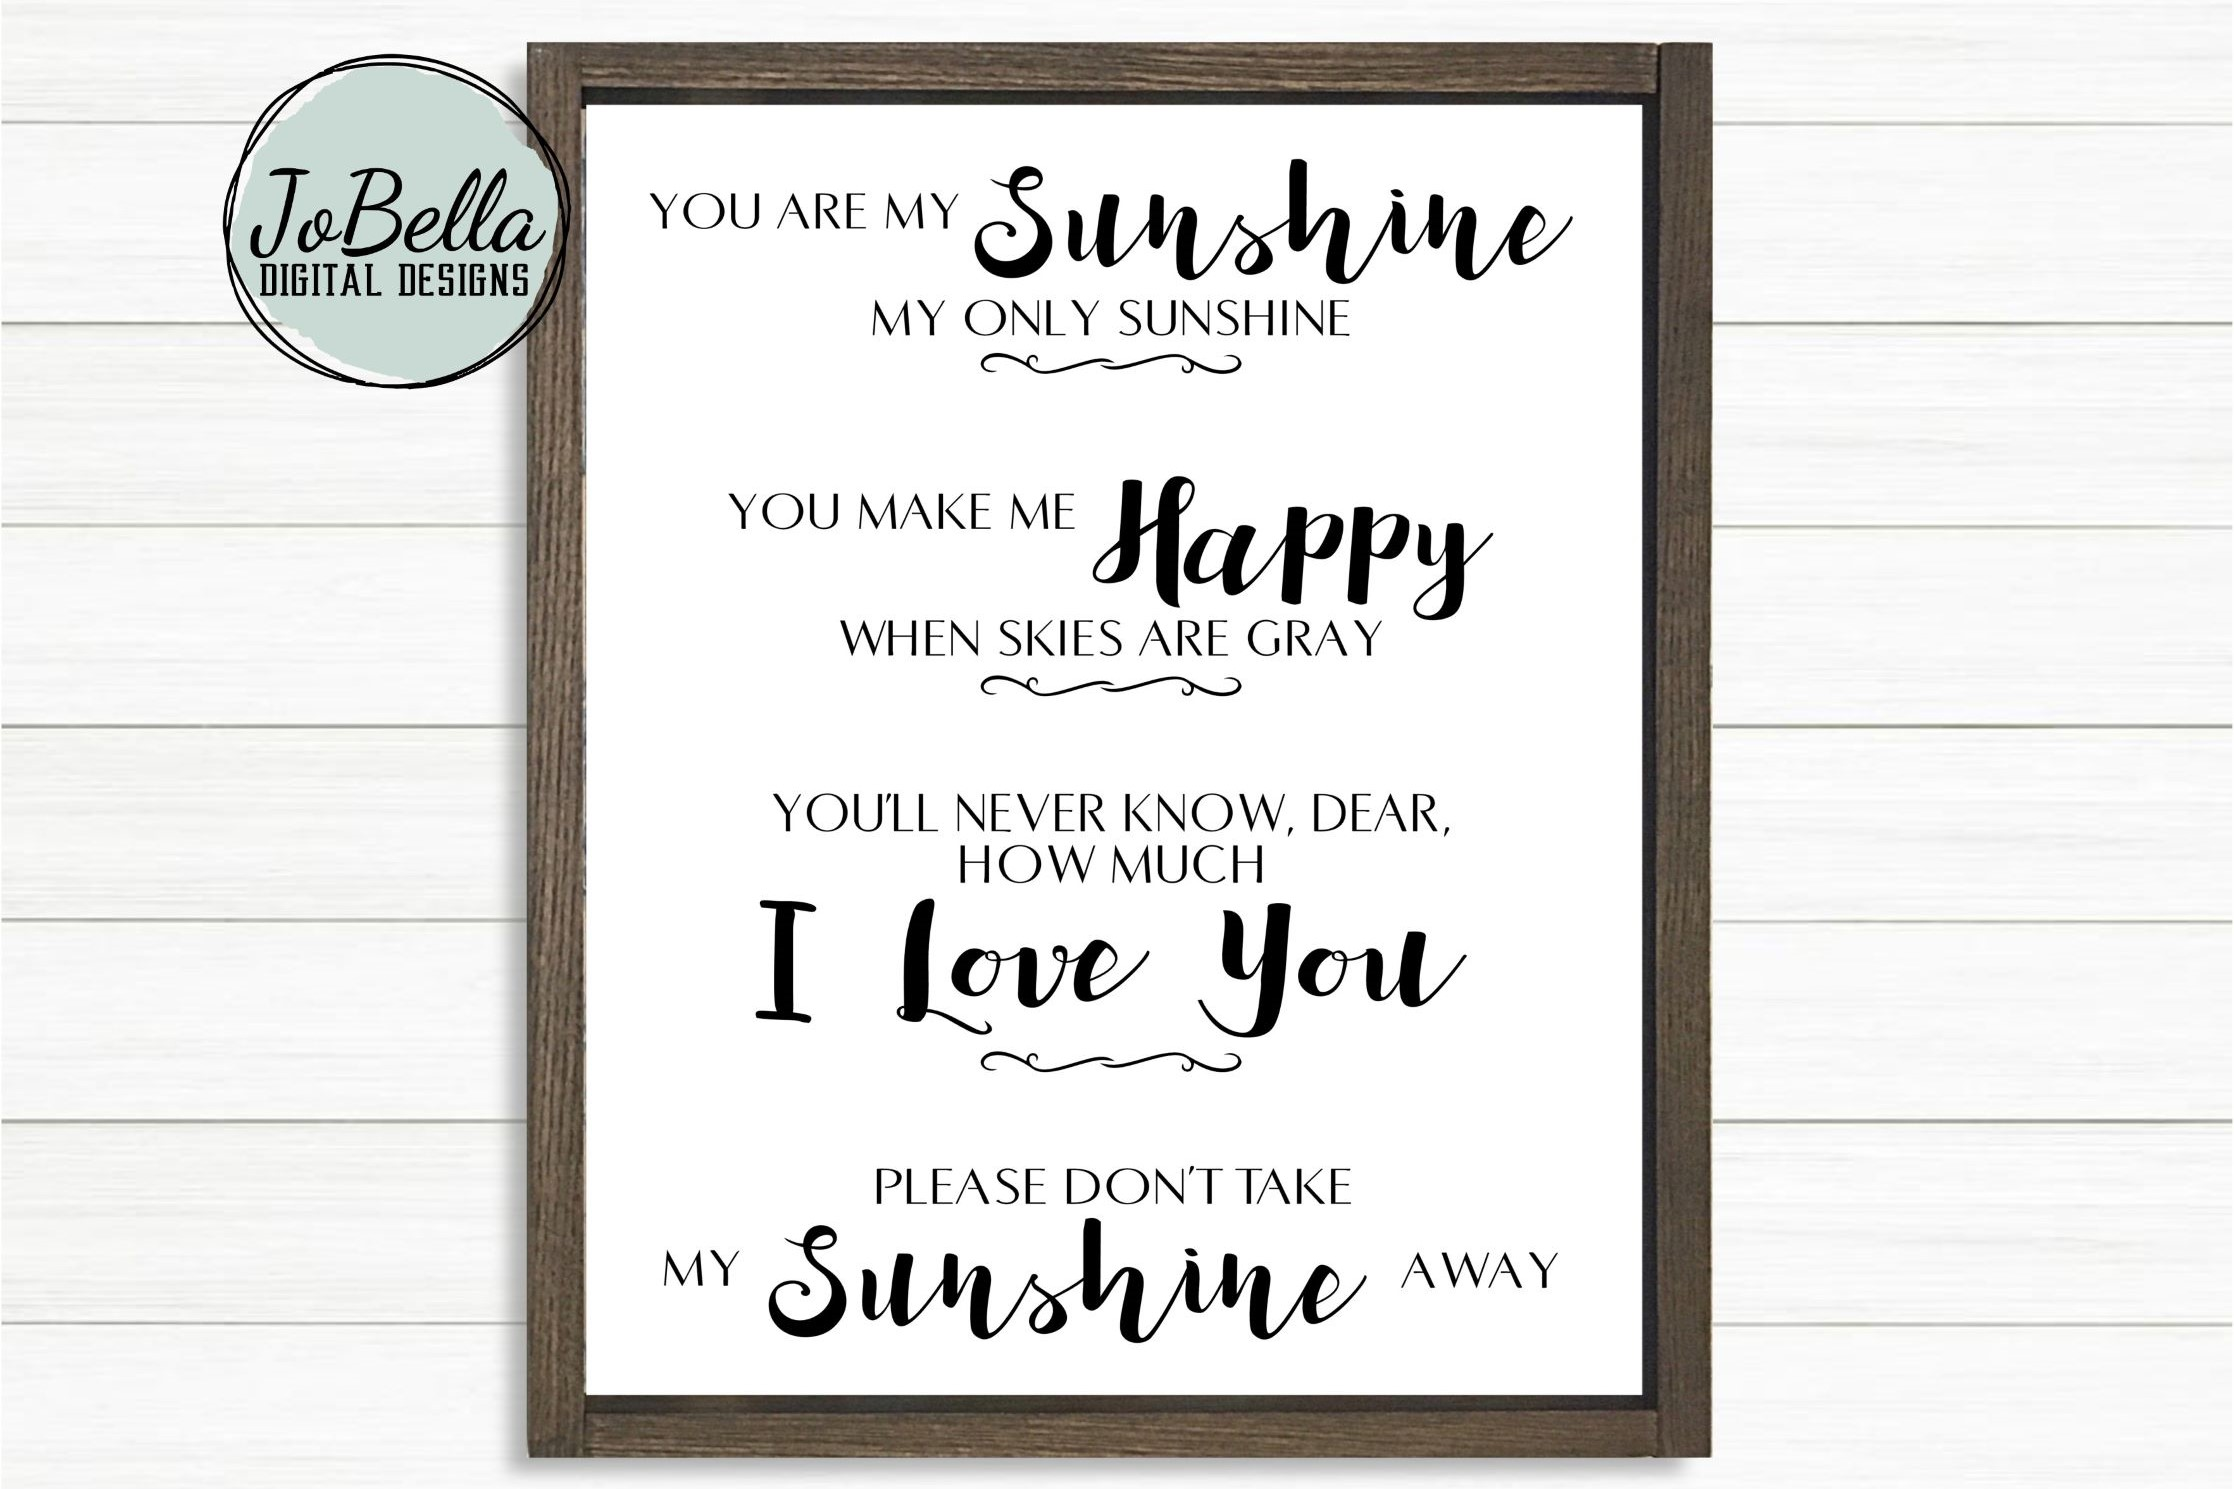 Download Free You Are My Sunshine Graphic By Jobella Digital Designs for Cricut Explore, Silhouette and other cutting machines.